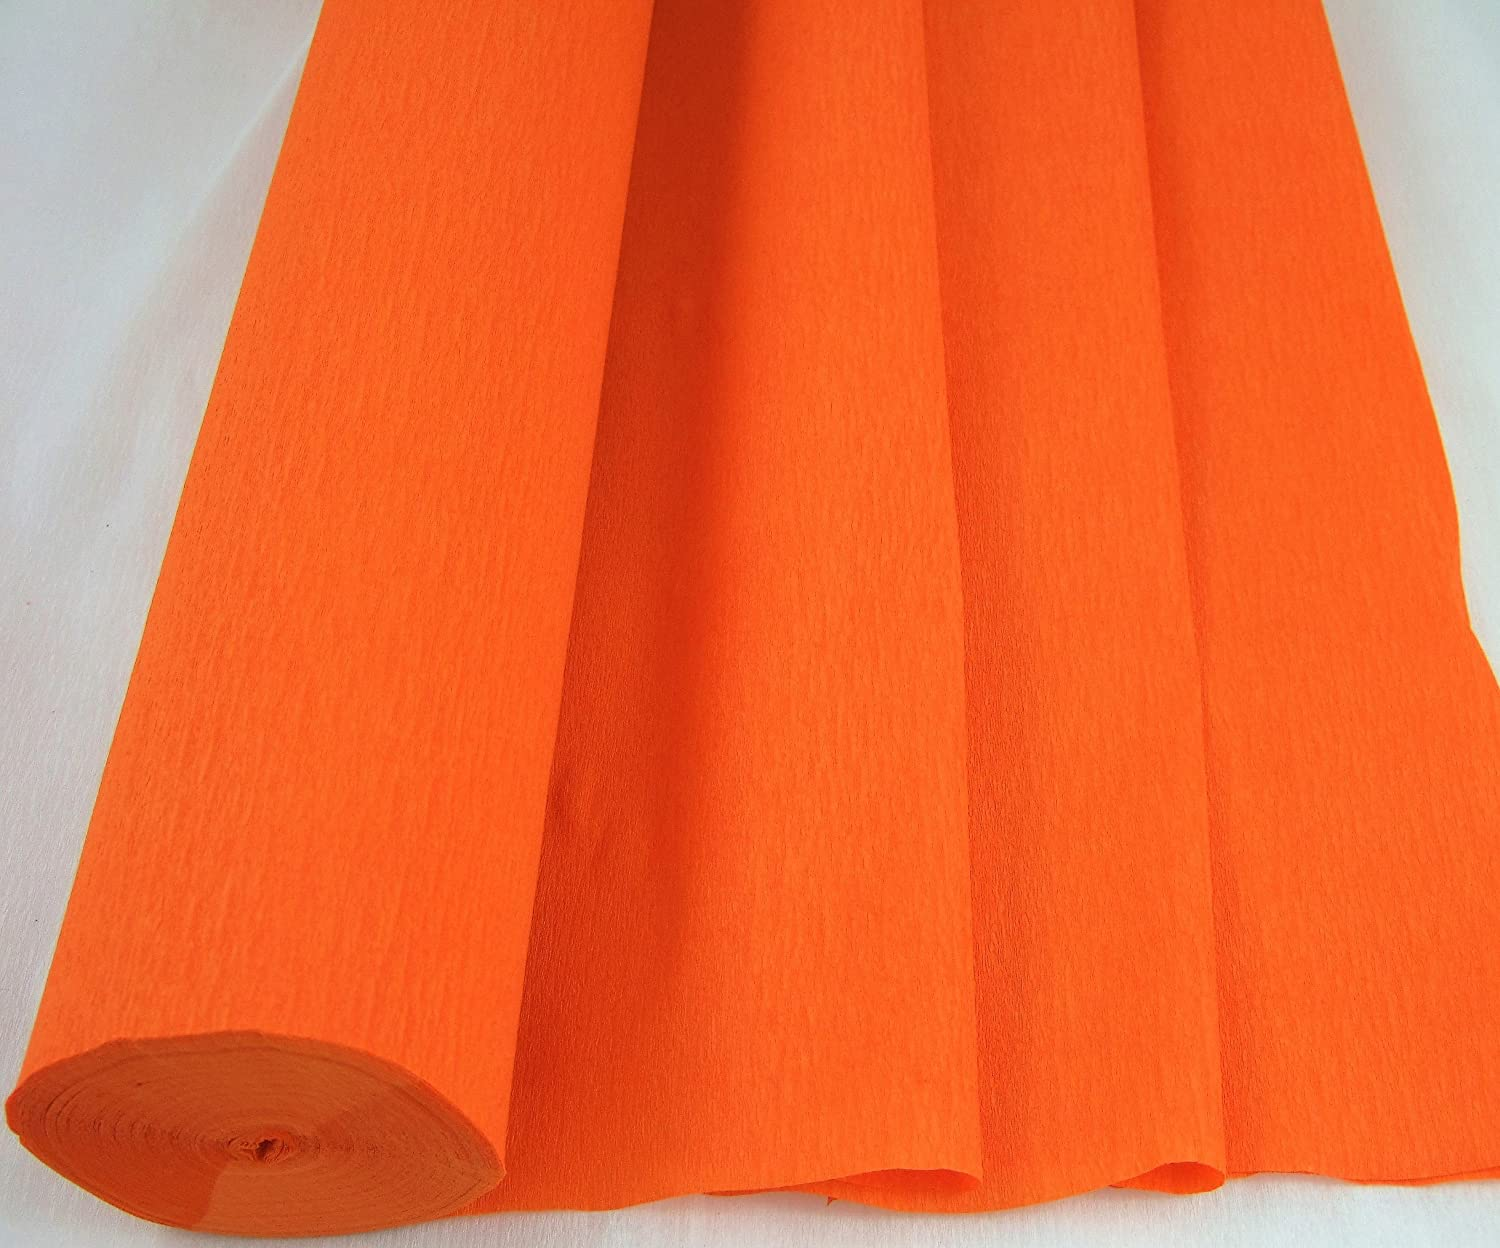 1 Orange - Jumbo 26 Metre Crepe Paper Roll. 50cm x 26metres long Many uses as decorations, marketing tools, great favourite with schools and the craft industry Clikkabox Crepe C60V